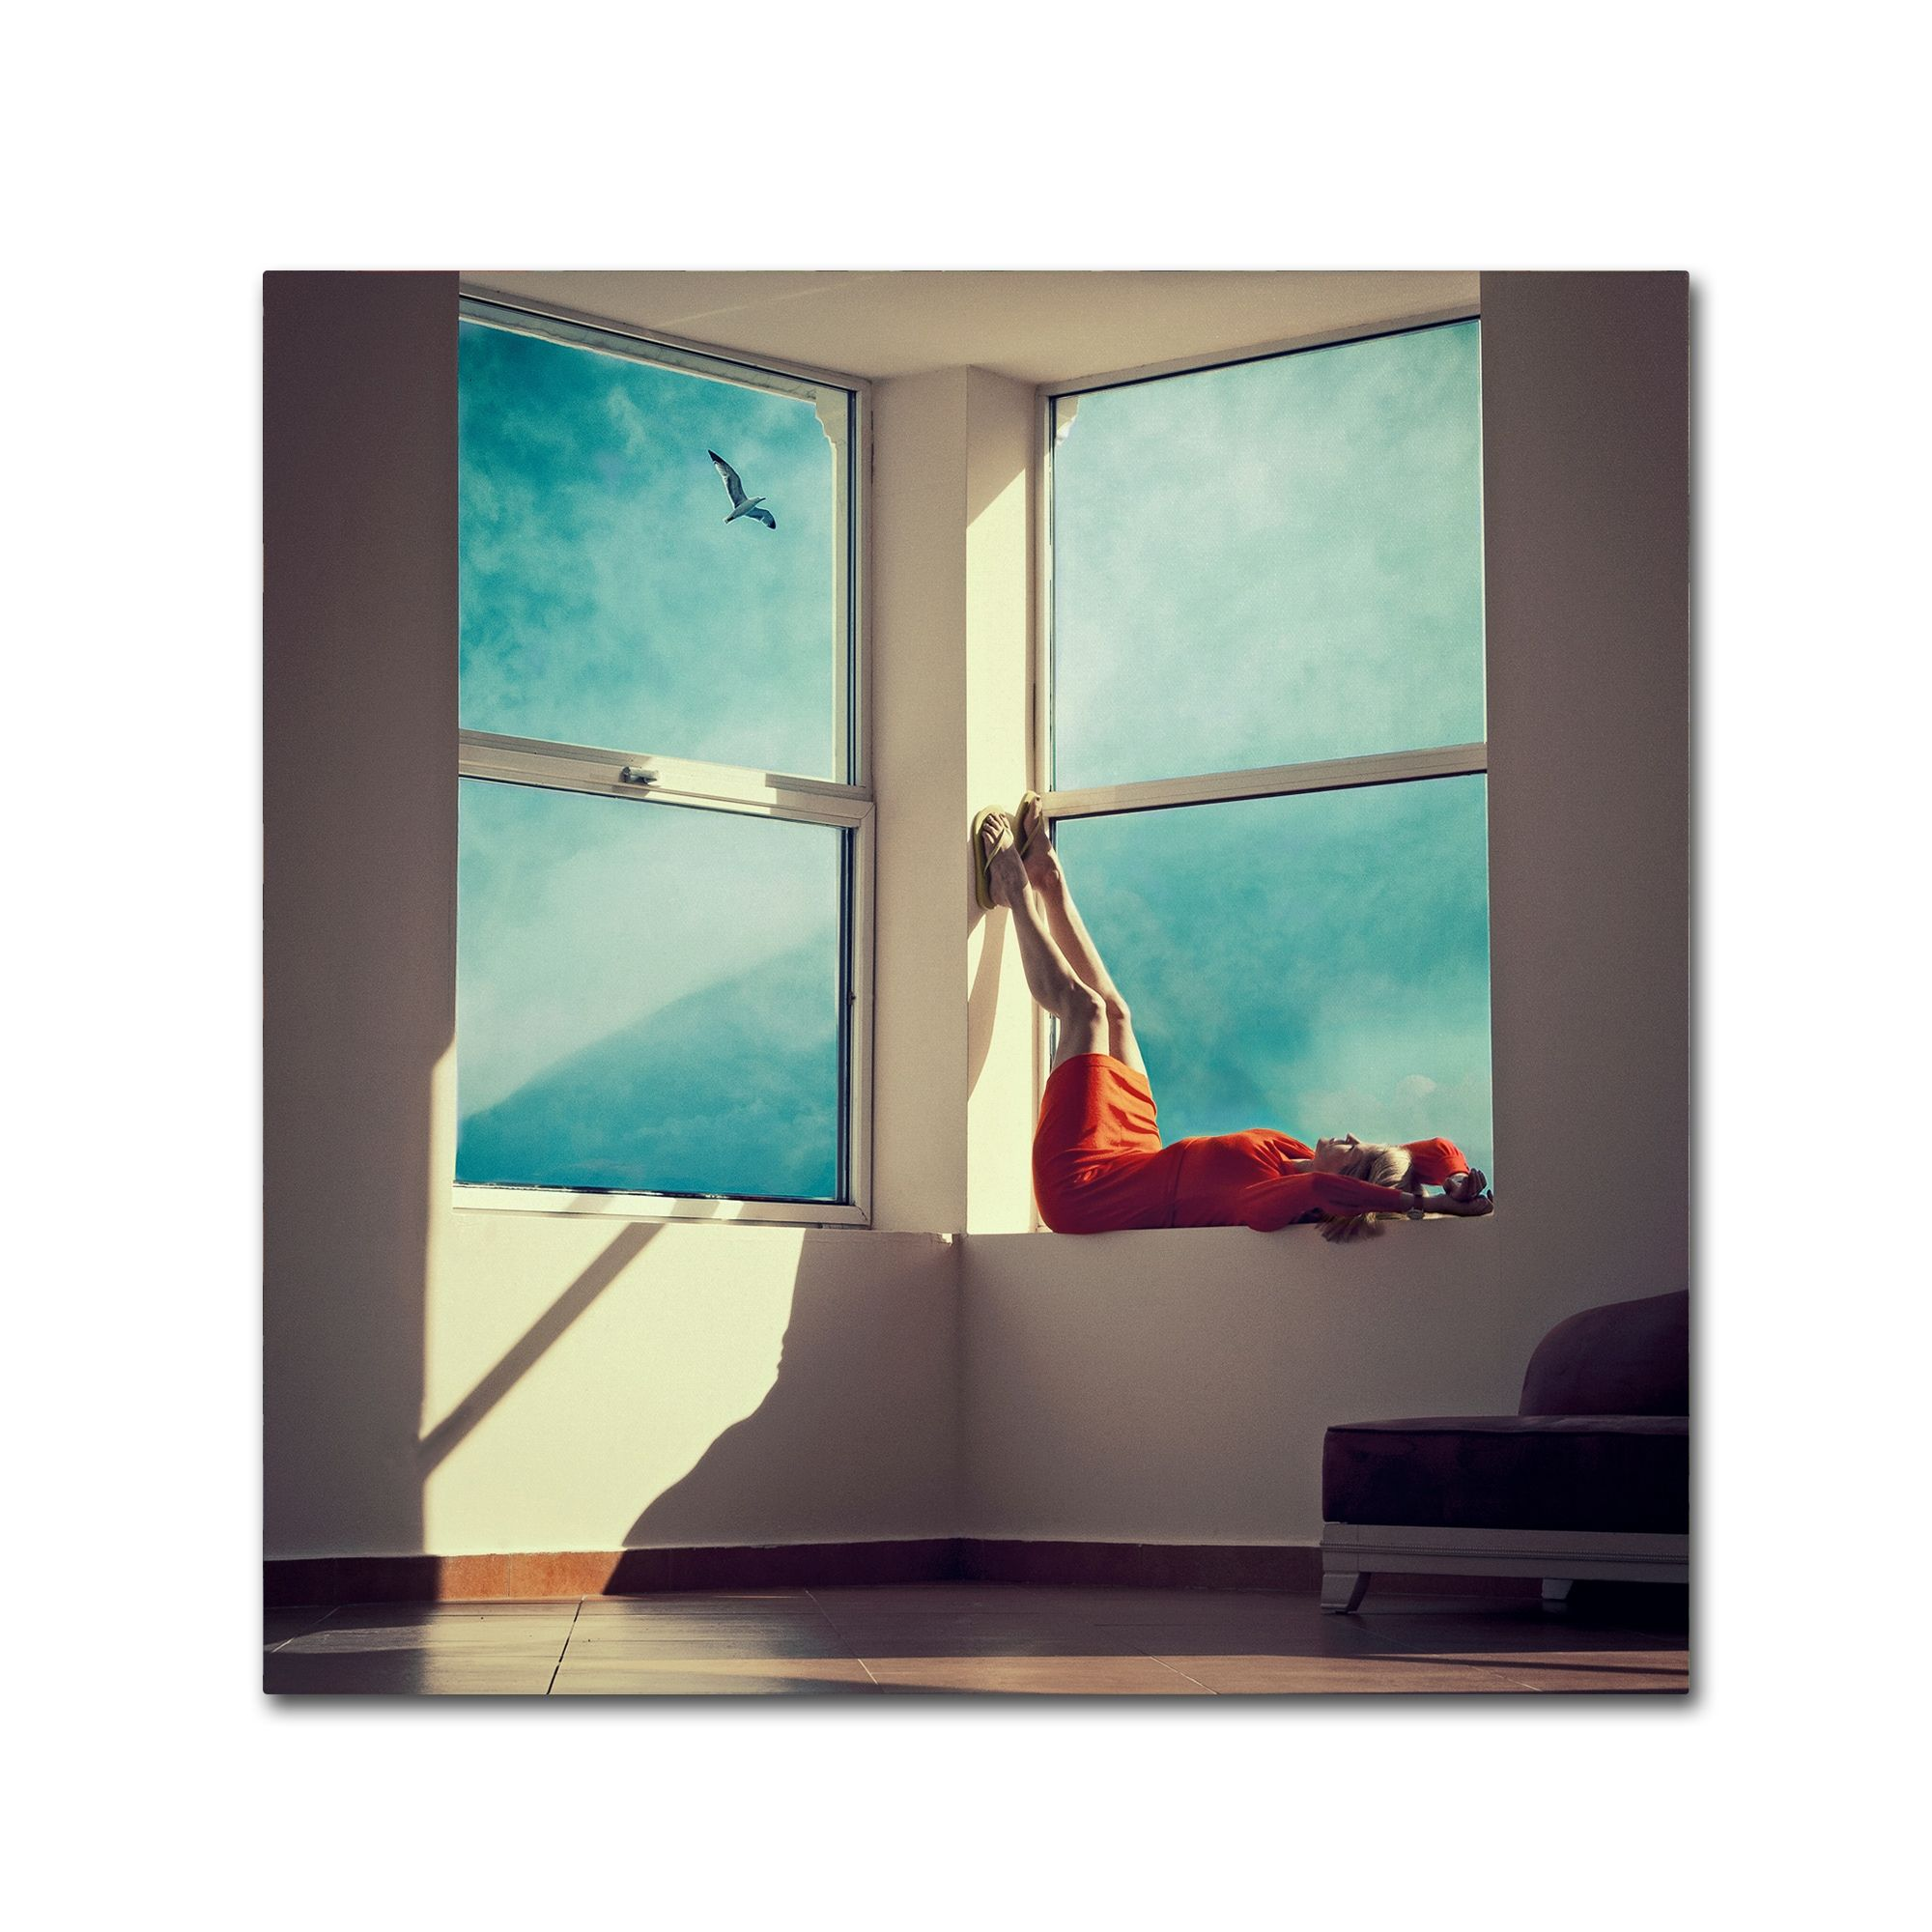 Leinwandbilder Günstig Bestellen Ambra Room With A View Canvas Art Products Pinterest